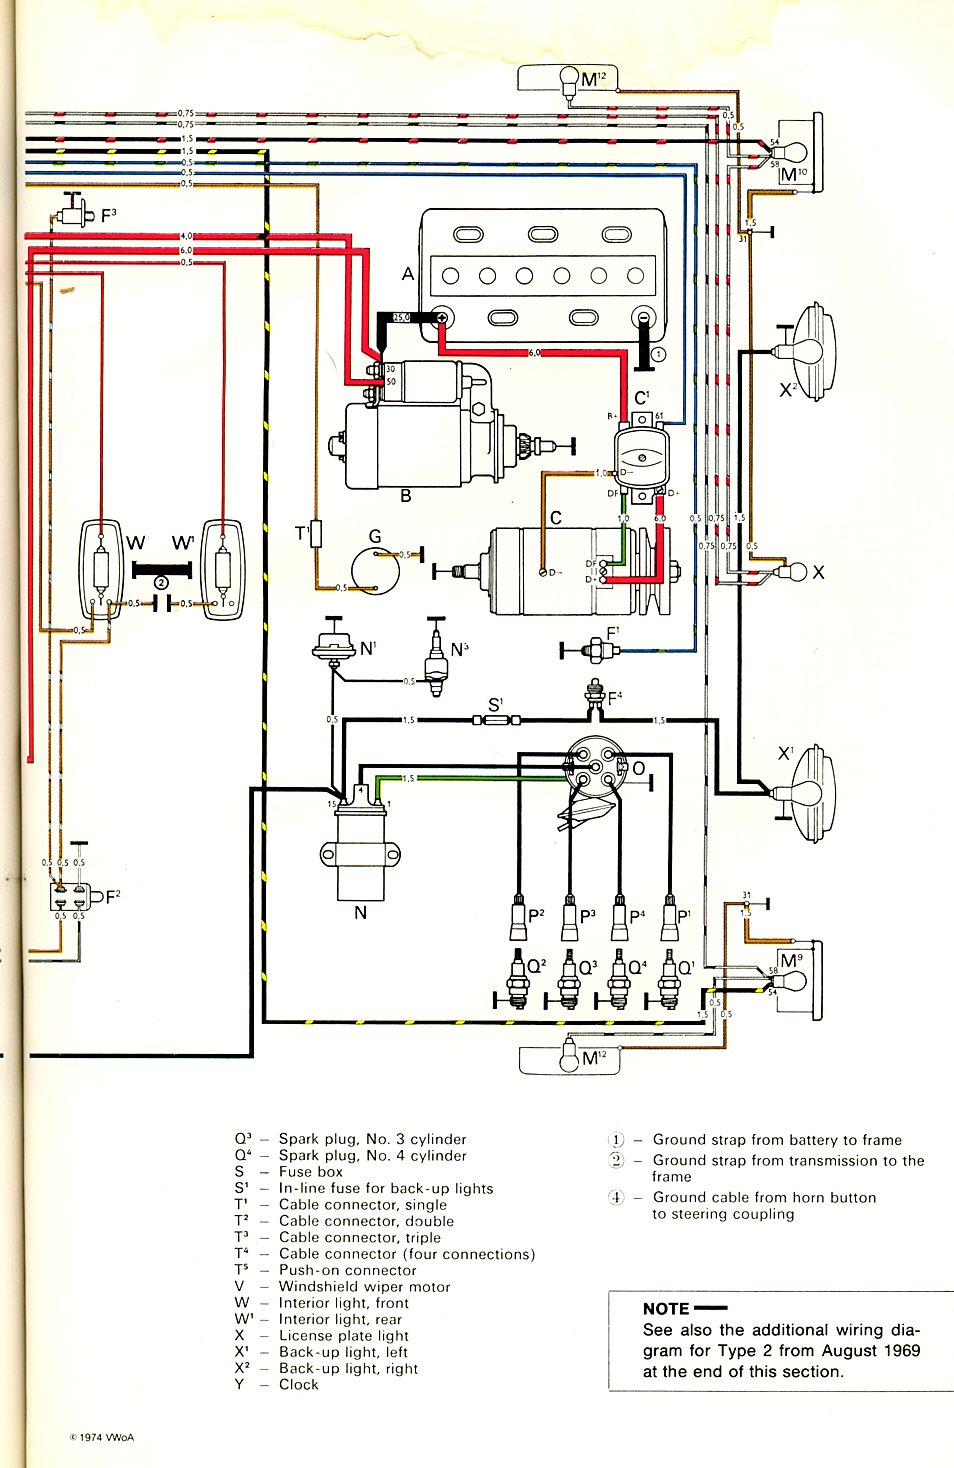 baybus_70b thesamba com type 2 wiring diagrams vw engine wiring diagram at arjmand.co